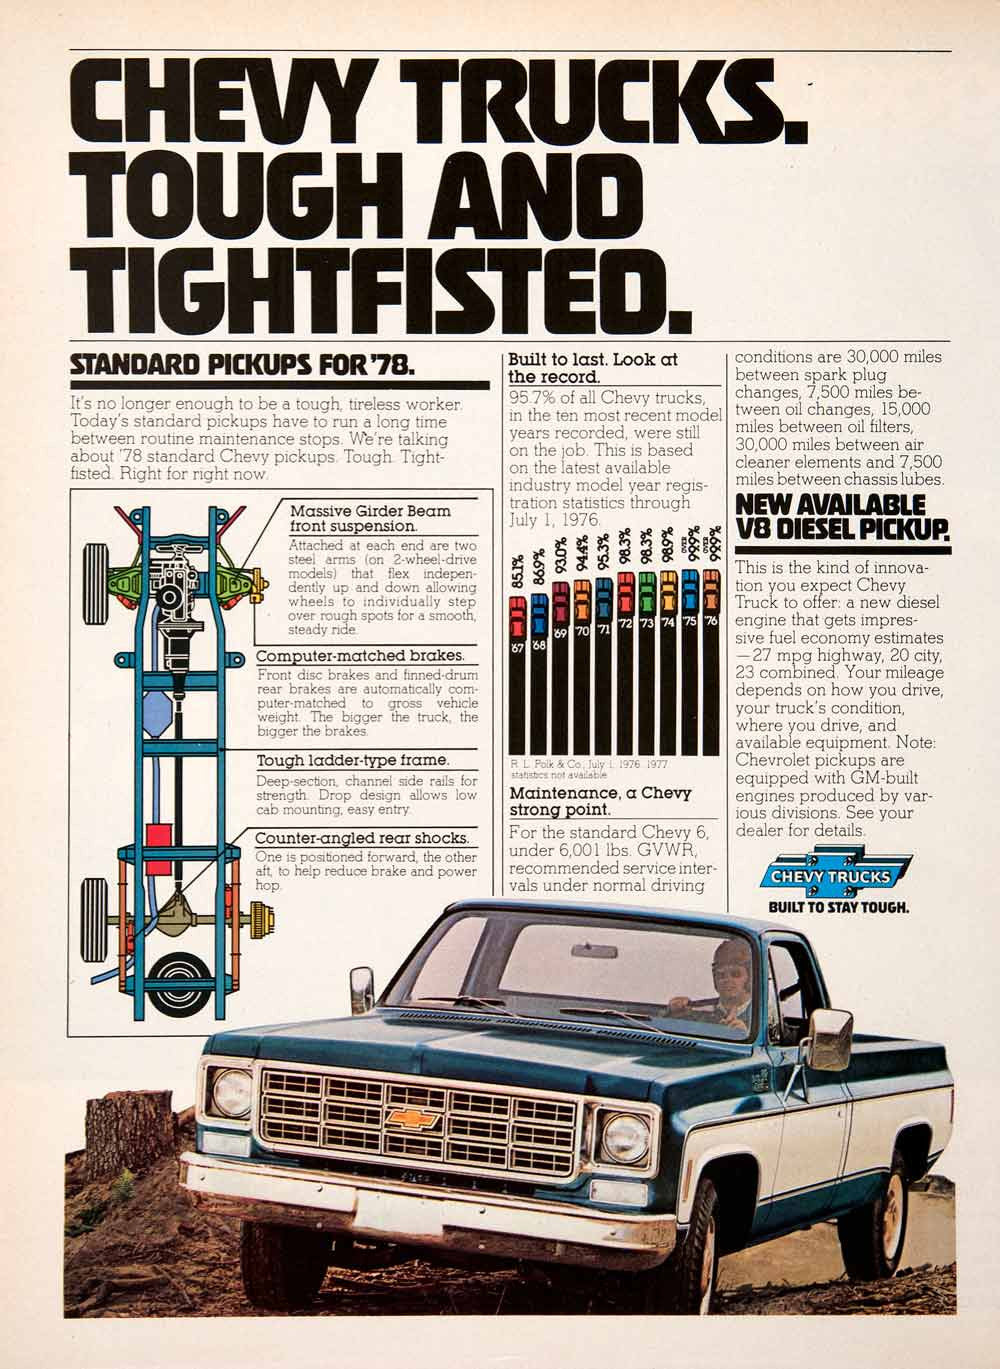 1977 Ad Chevy Chevrolet Pickup Truck Advertisement 1978 Diesel Engine SF4